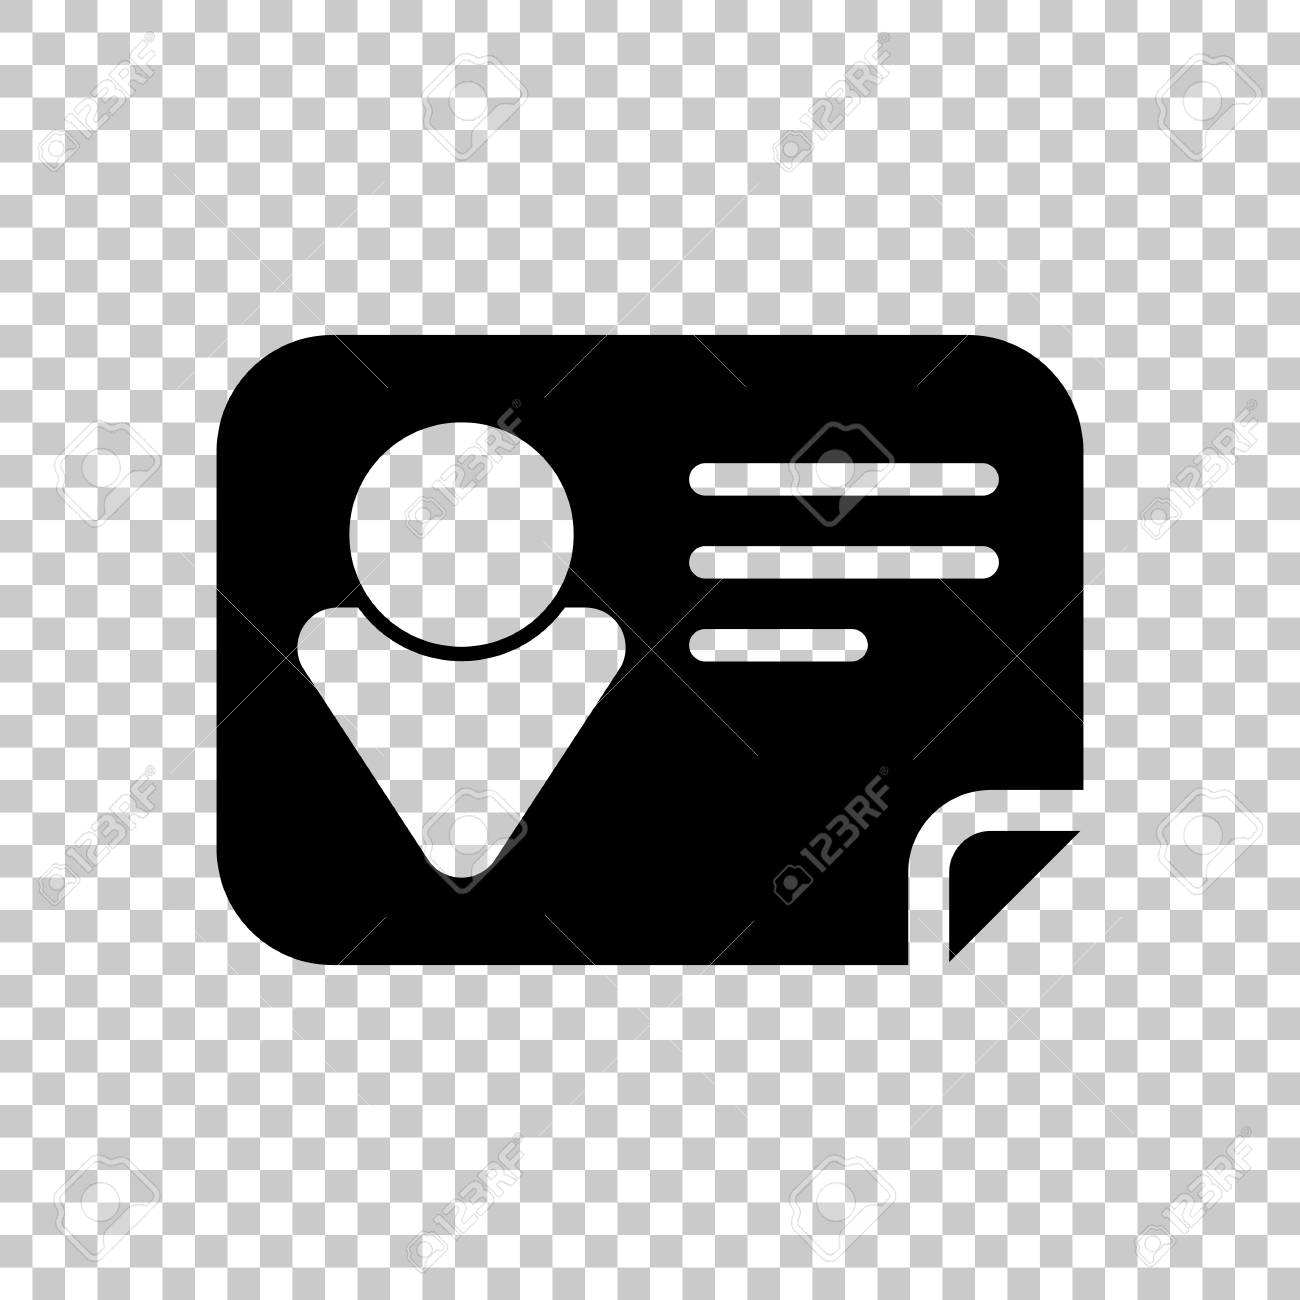 identification card icon on transparent background royalty free cliparts vectors and stock illustration image 101169476 123rf com